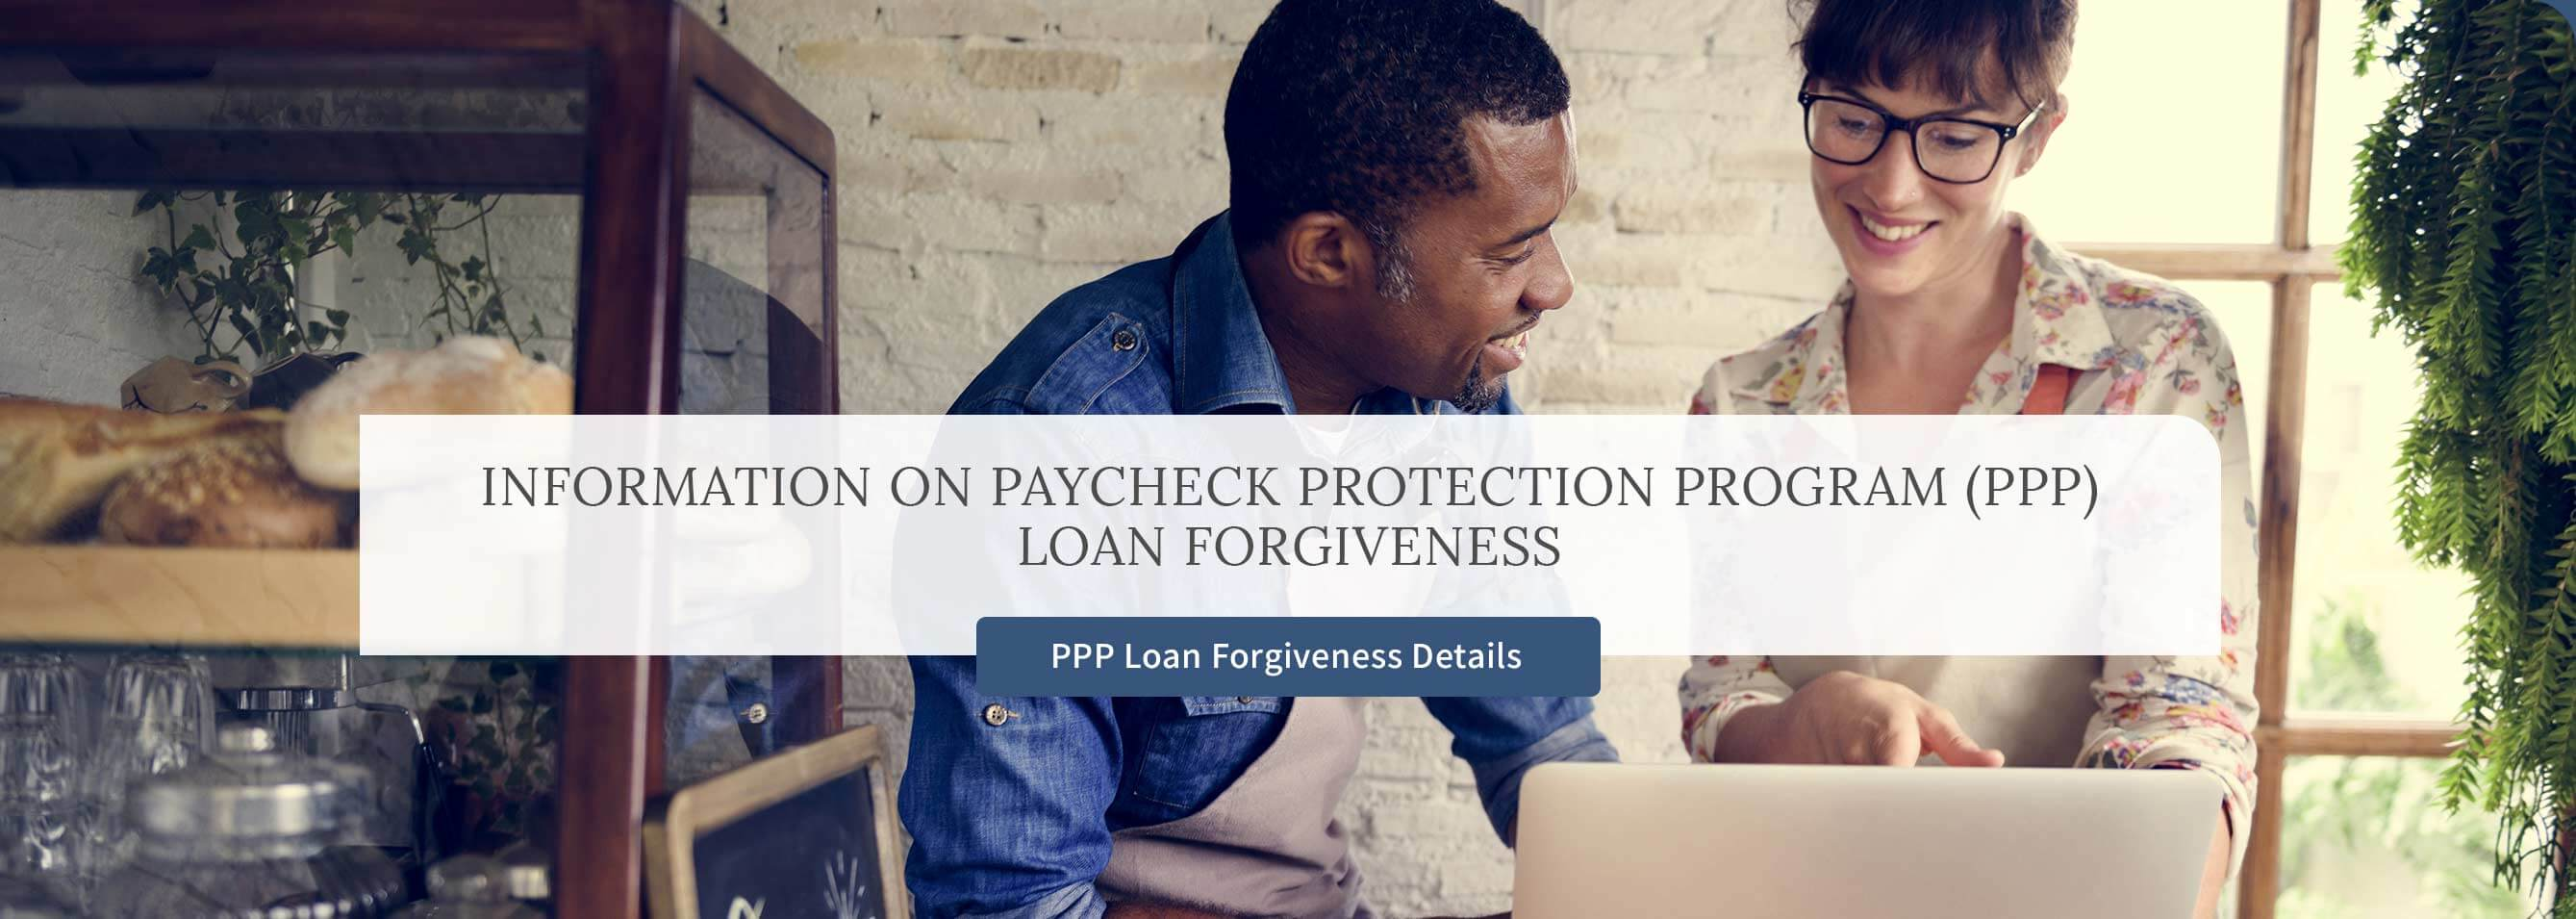 Information on Paycheck Protection Program (PPP) Loan Forgiveness.  PPP Loan Forgiveness Details.